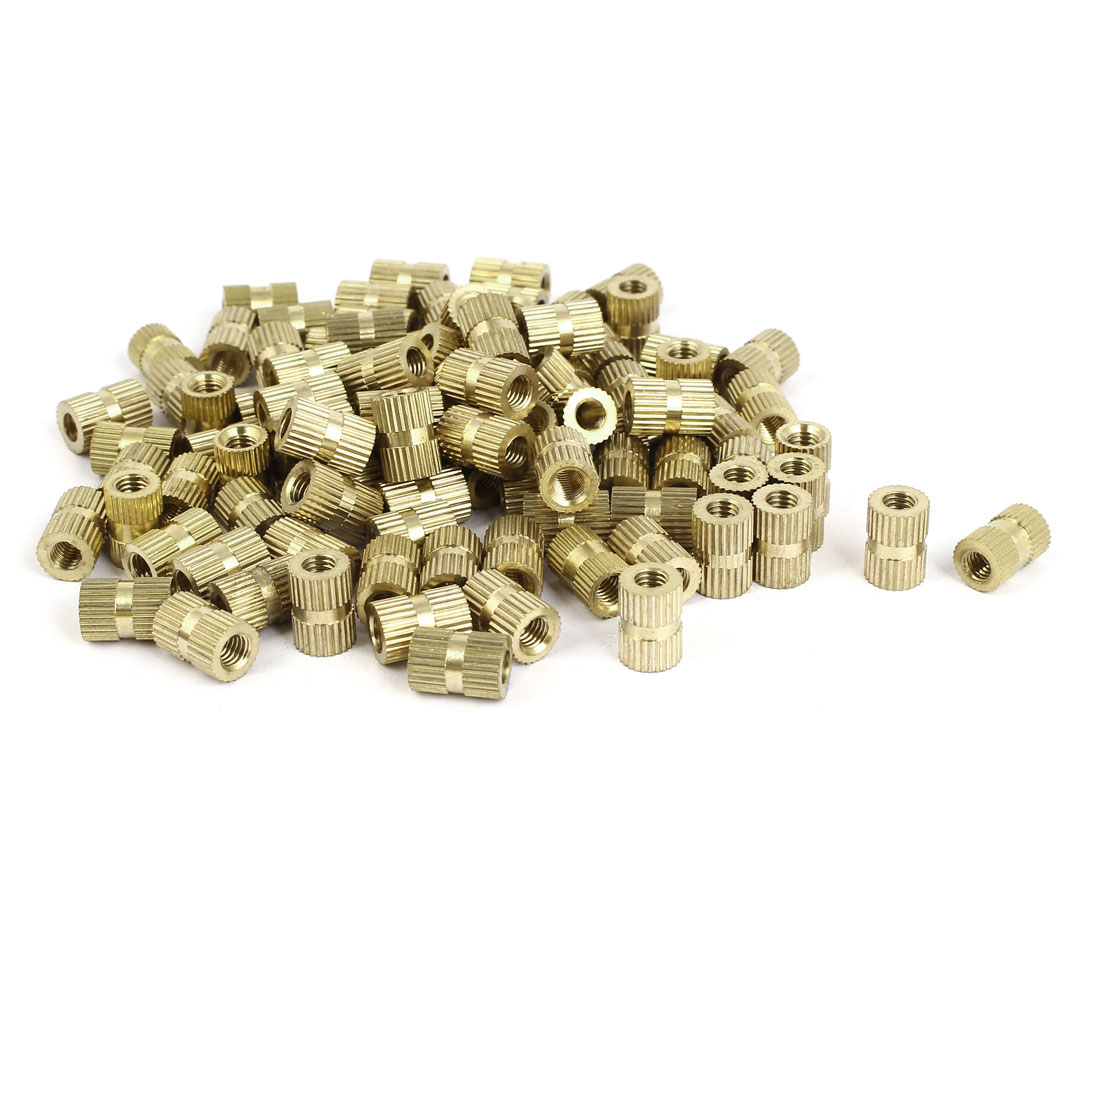 M5 x 12mm Brass Cylinder Knurled Threaded Round Insert Embedded Nuts 100PCS